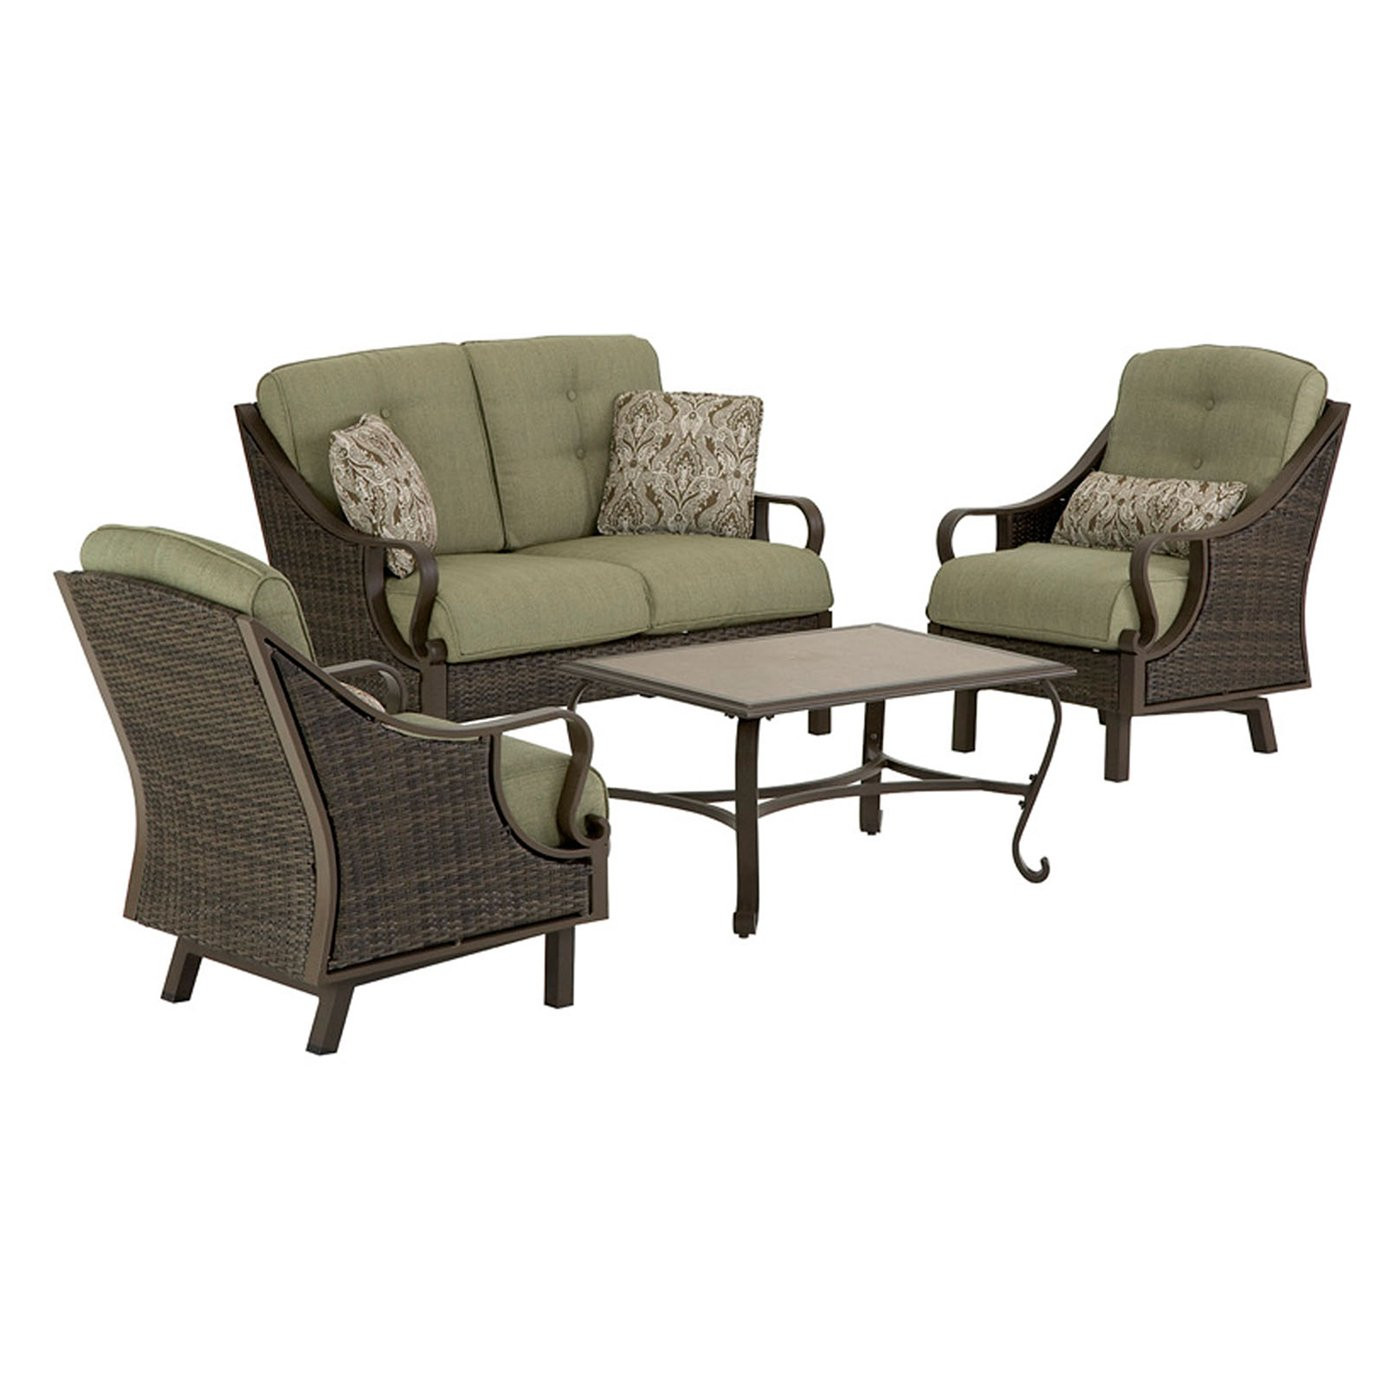 Best ideas about Hanover Outdoor Furniture . Save or Pin Hanover Outdoor Furniture VENTURA4PC Ventura 4 Piece Now.